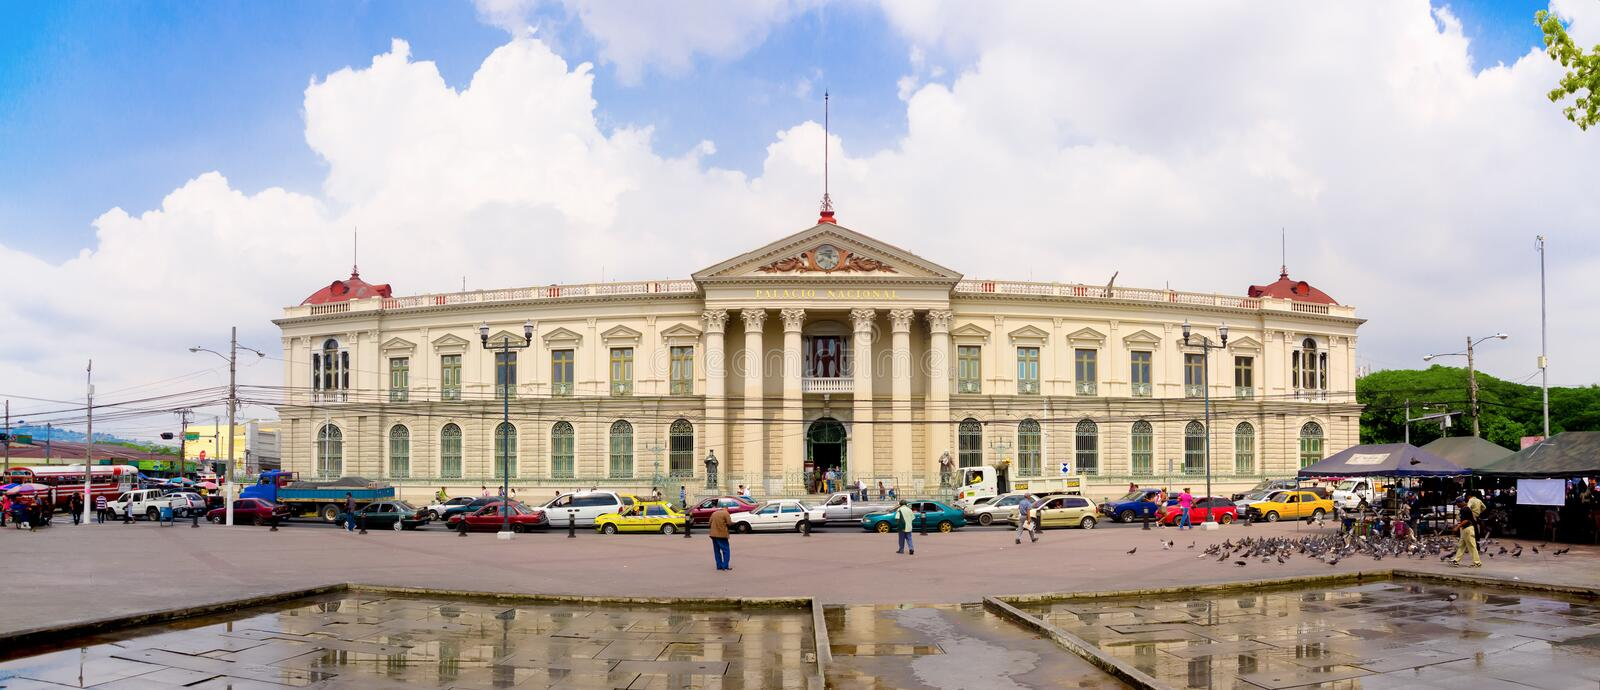 San Salvador, El Salvador - Presidential Palace. San Salvador, El Salvador - May-04-2014 Front view of the Presidential Palace with traffic jam royalty free stock photo